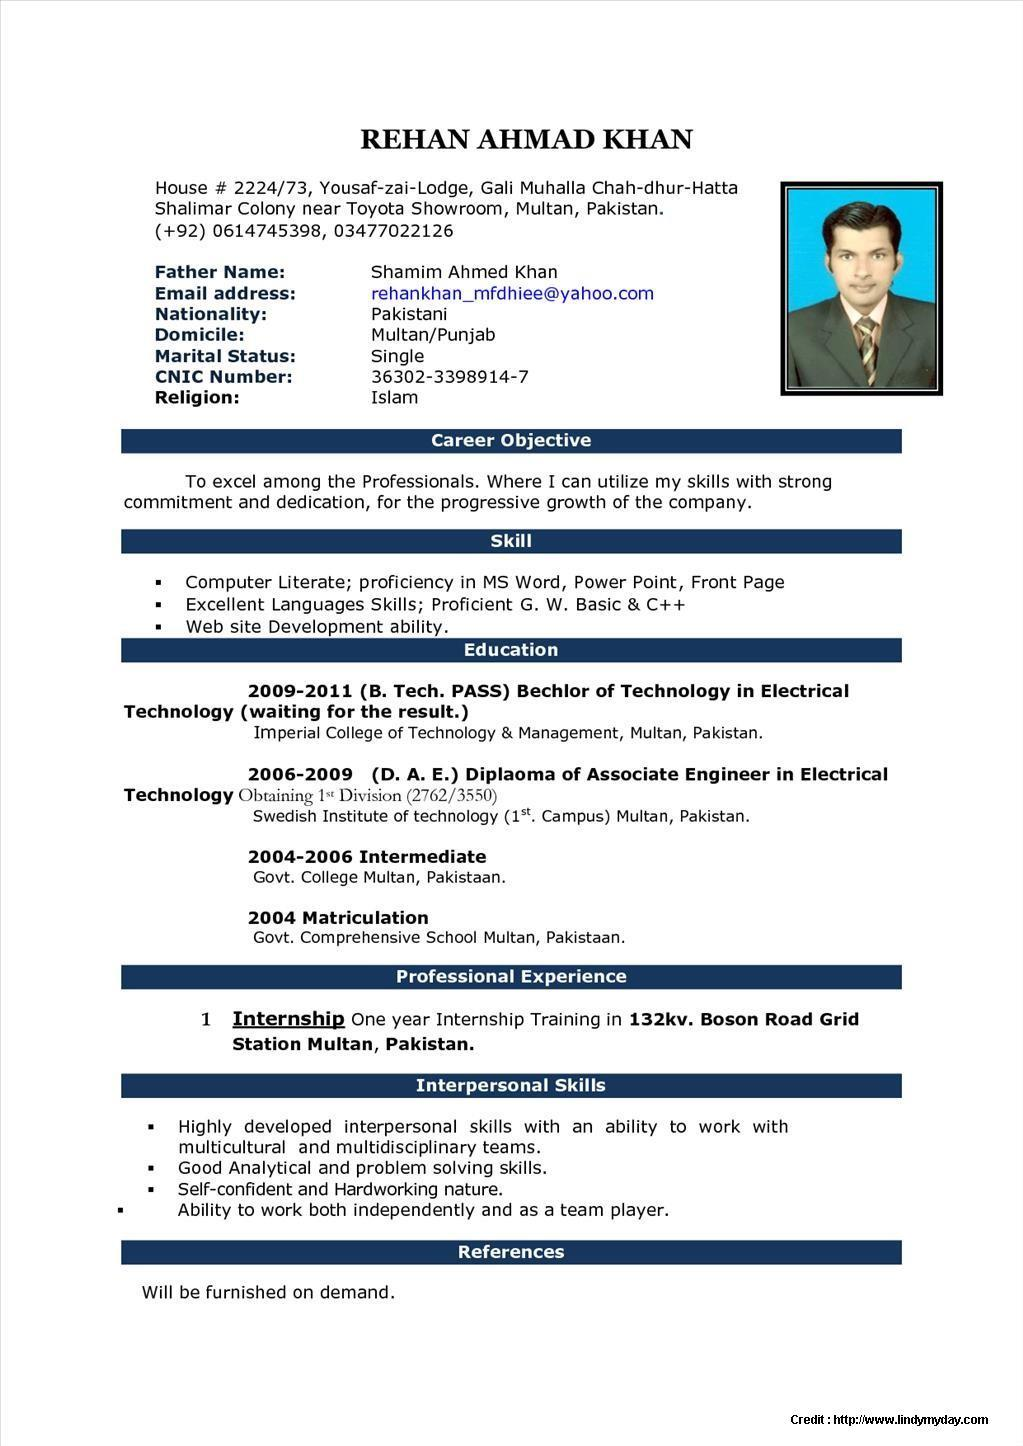 Resume Format Microsoft Word File Download